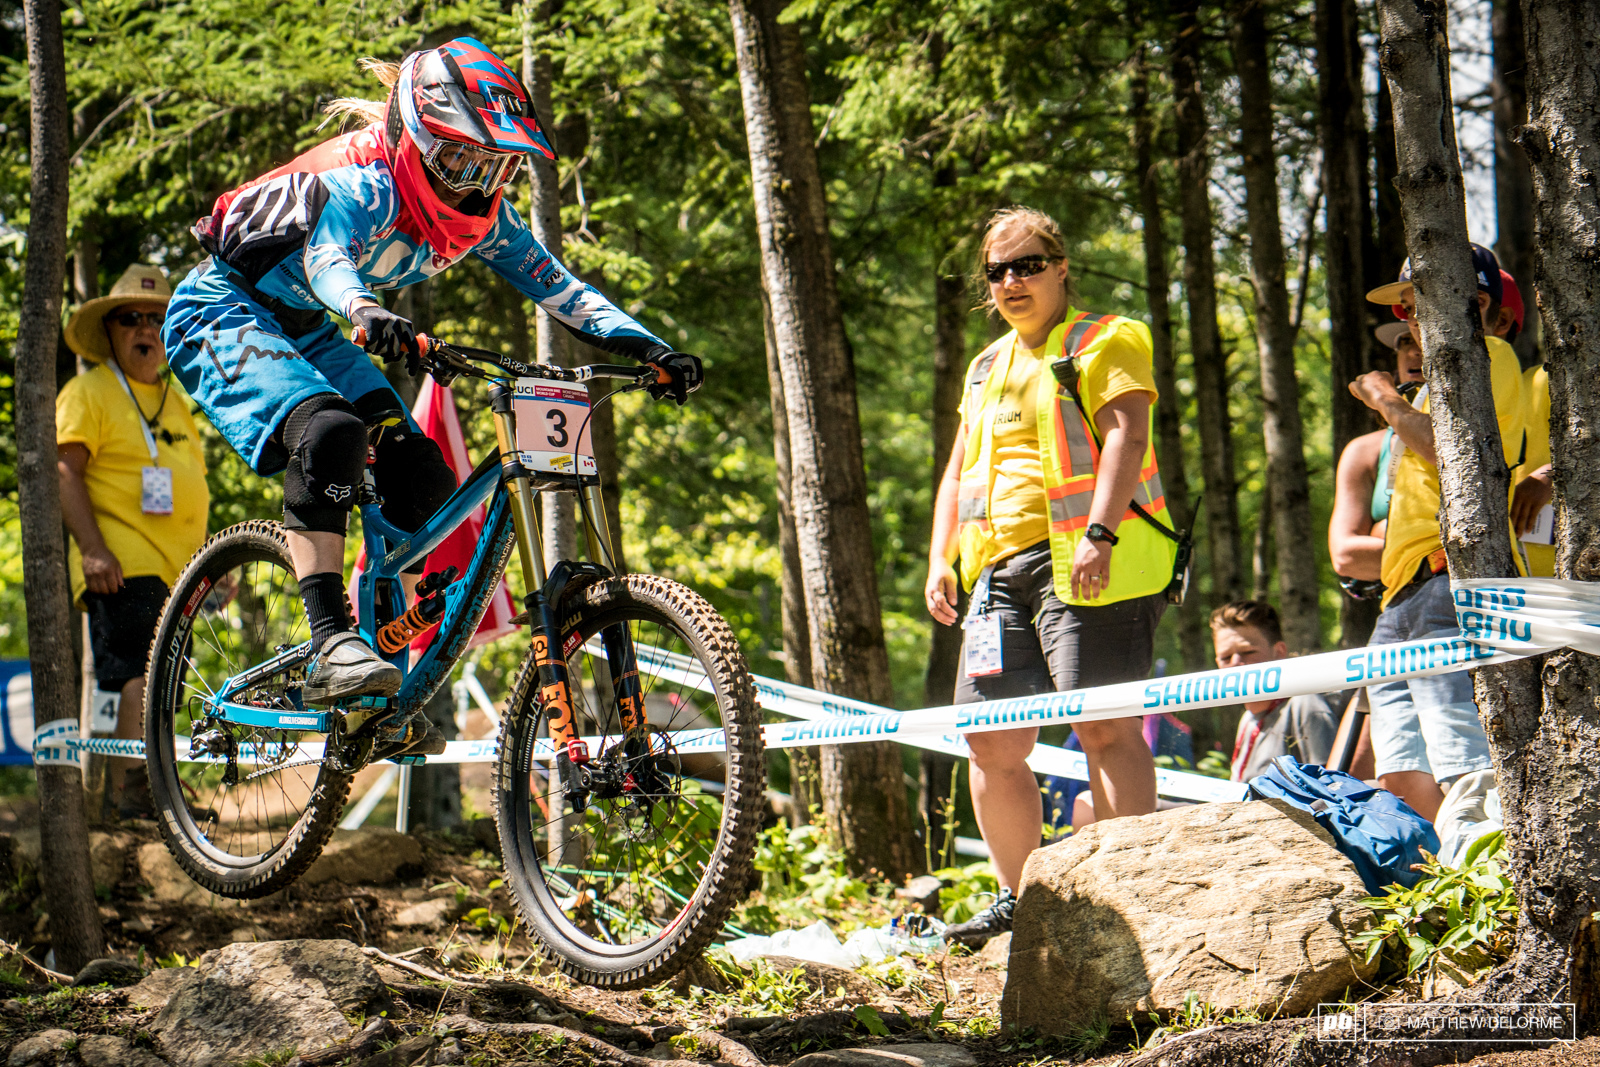 Mont-Sainte-Anne DH World Cup 2016